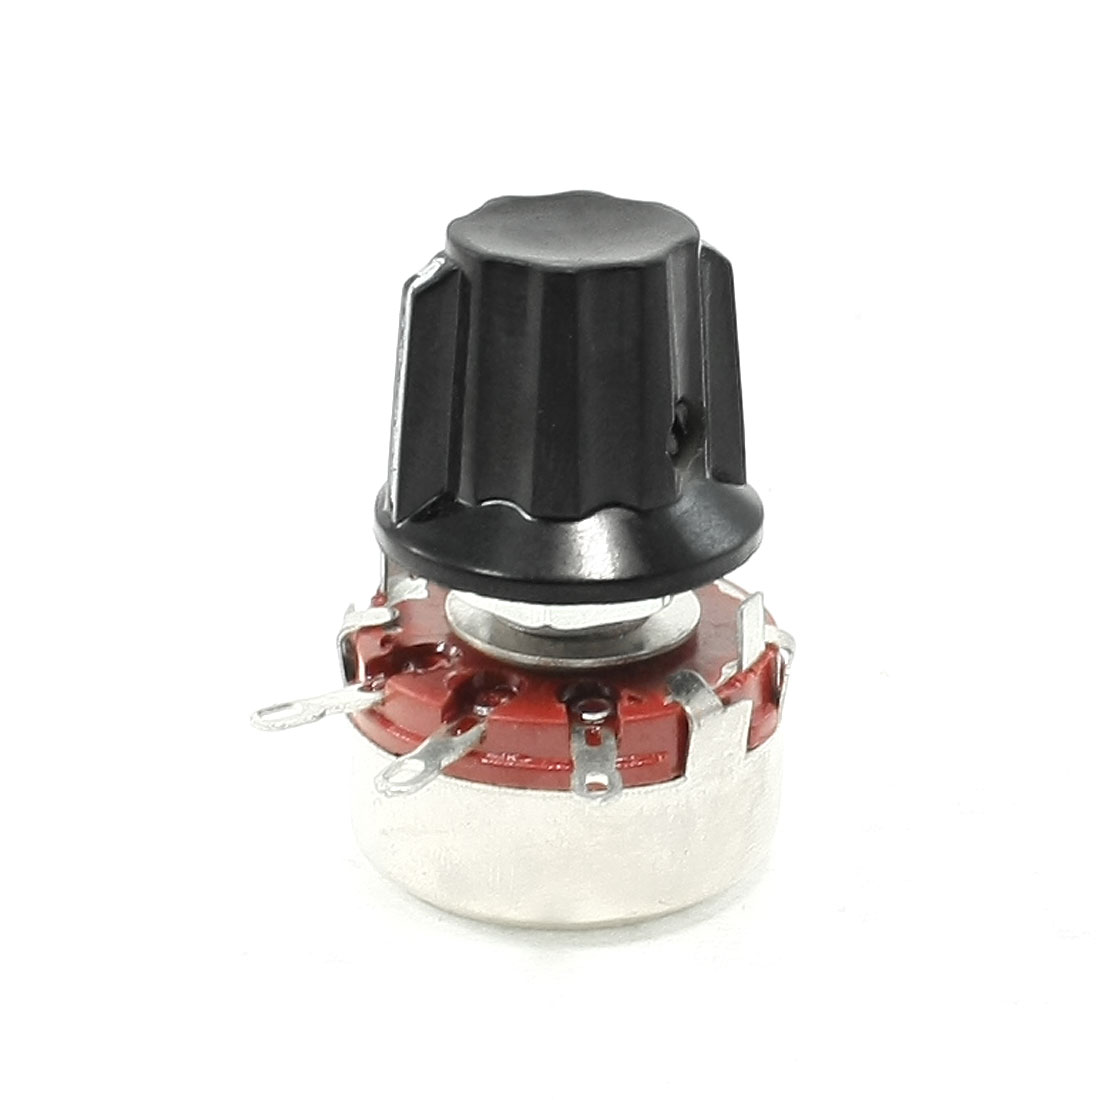 WTH118 22K ohm Single Turn Rotary Linear Taper Carbon Potentiometer Pot w Knob